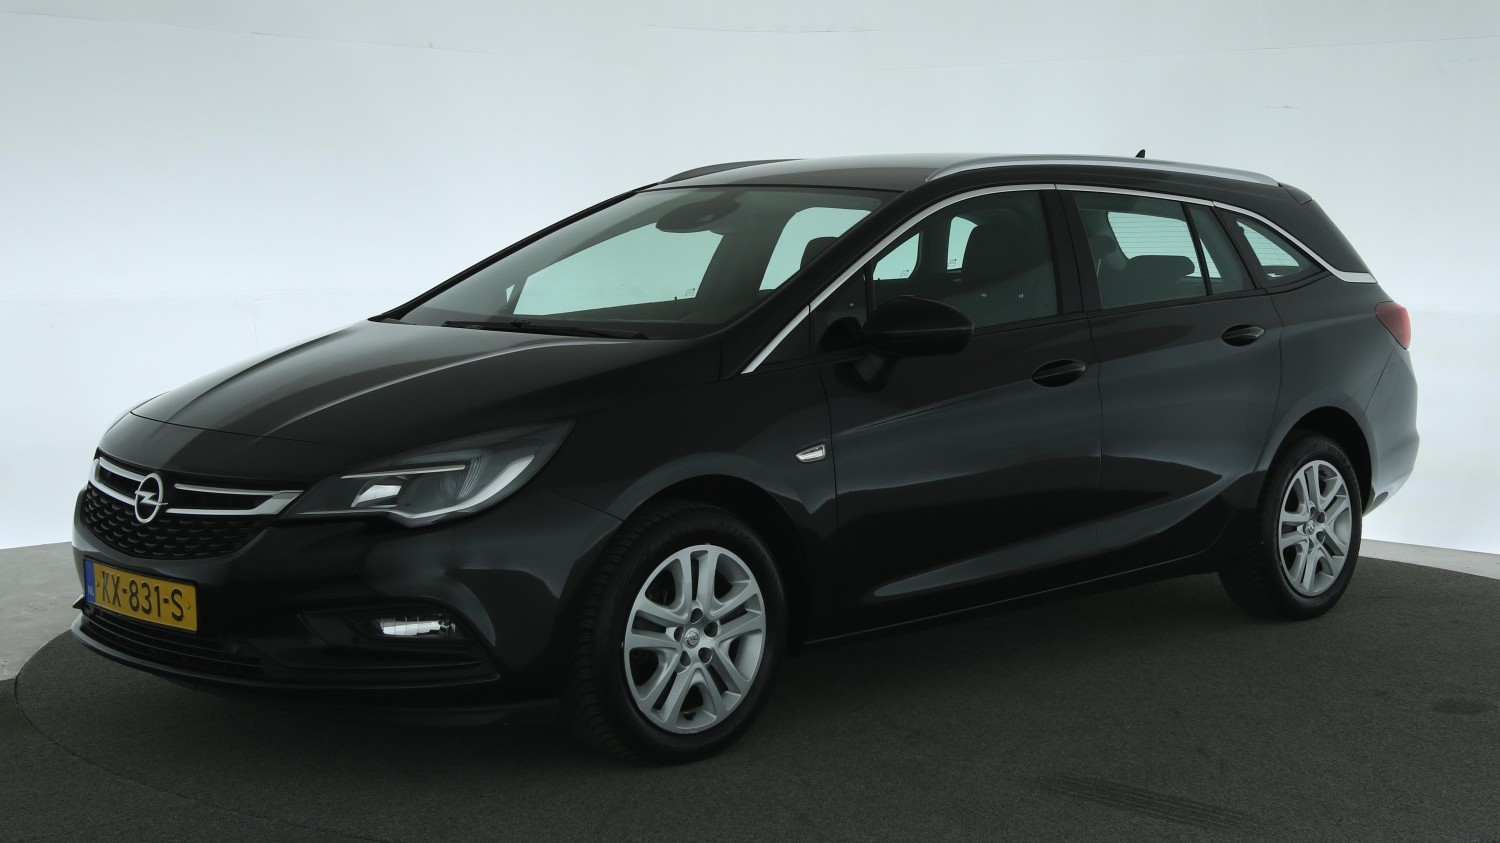 Opel Astra Station 2016 KX-831-S 1